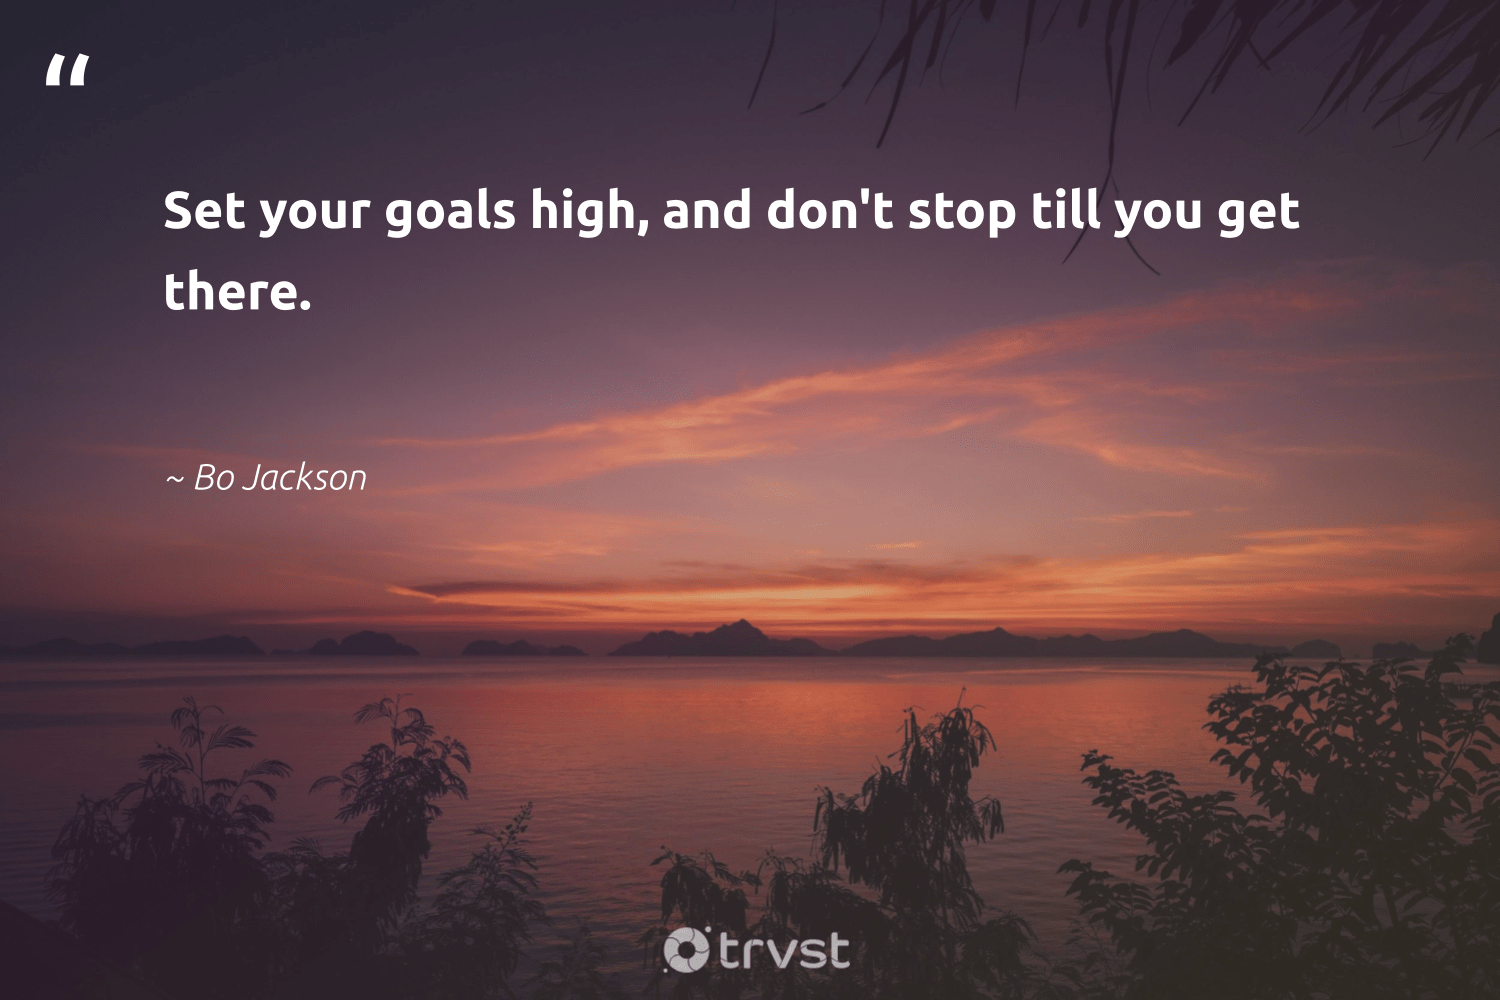 """Set your goals high, and don't stop till you get there.""  - Bo Jackson #trvst #quotes #goals #mindful #begreat #nevergiveup #takeaction #creativemindset #futureofwork #mindset #dogood #positivity"